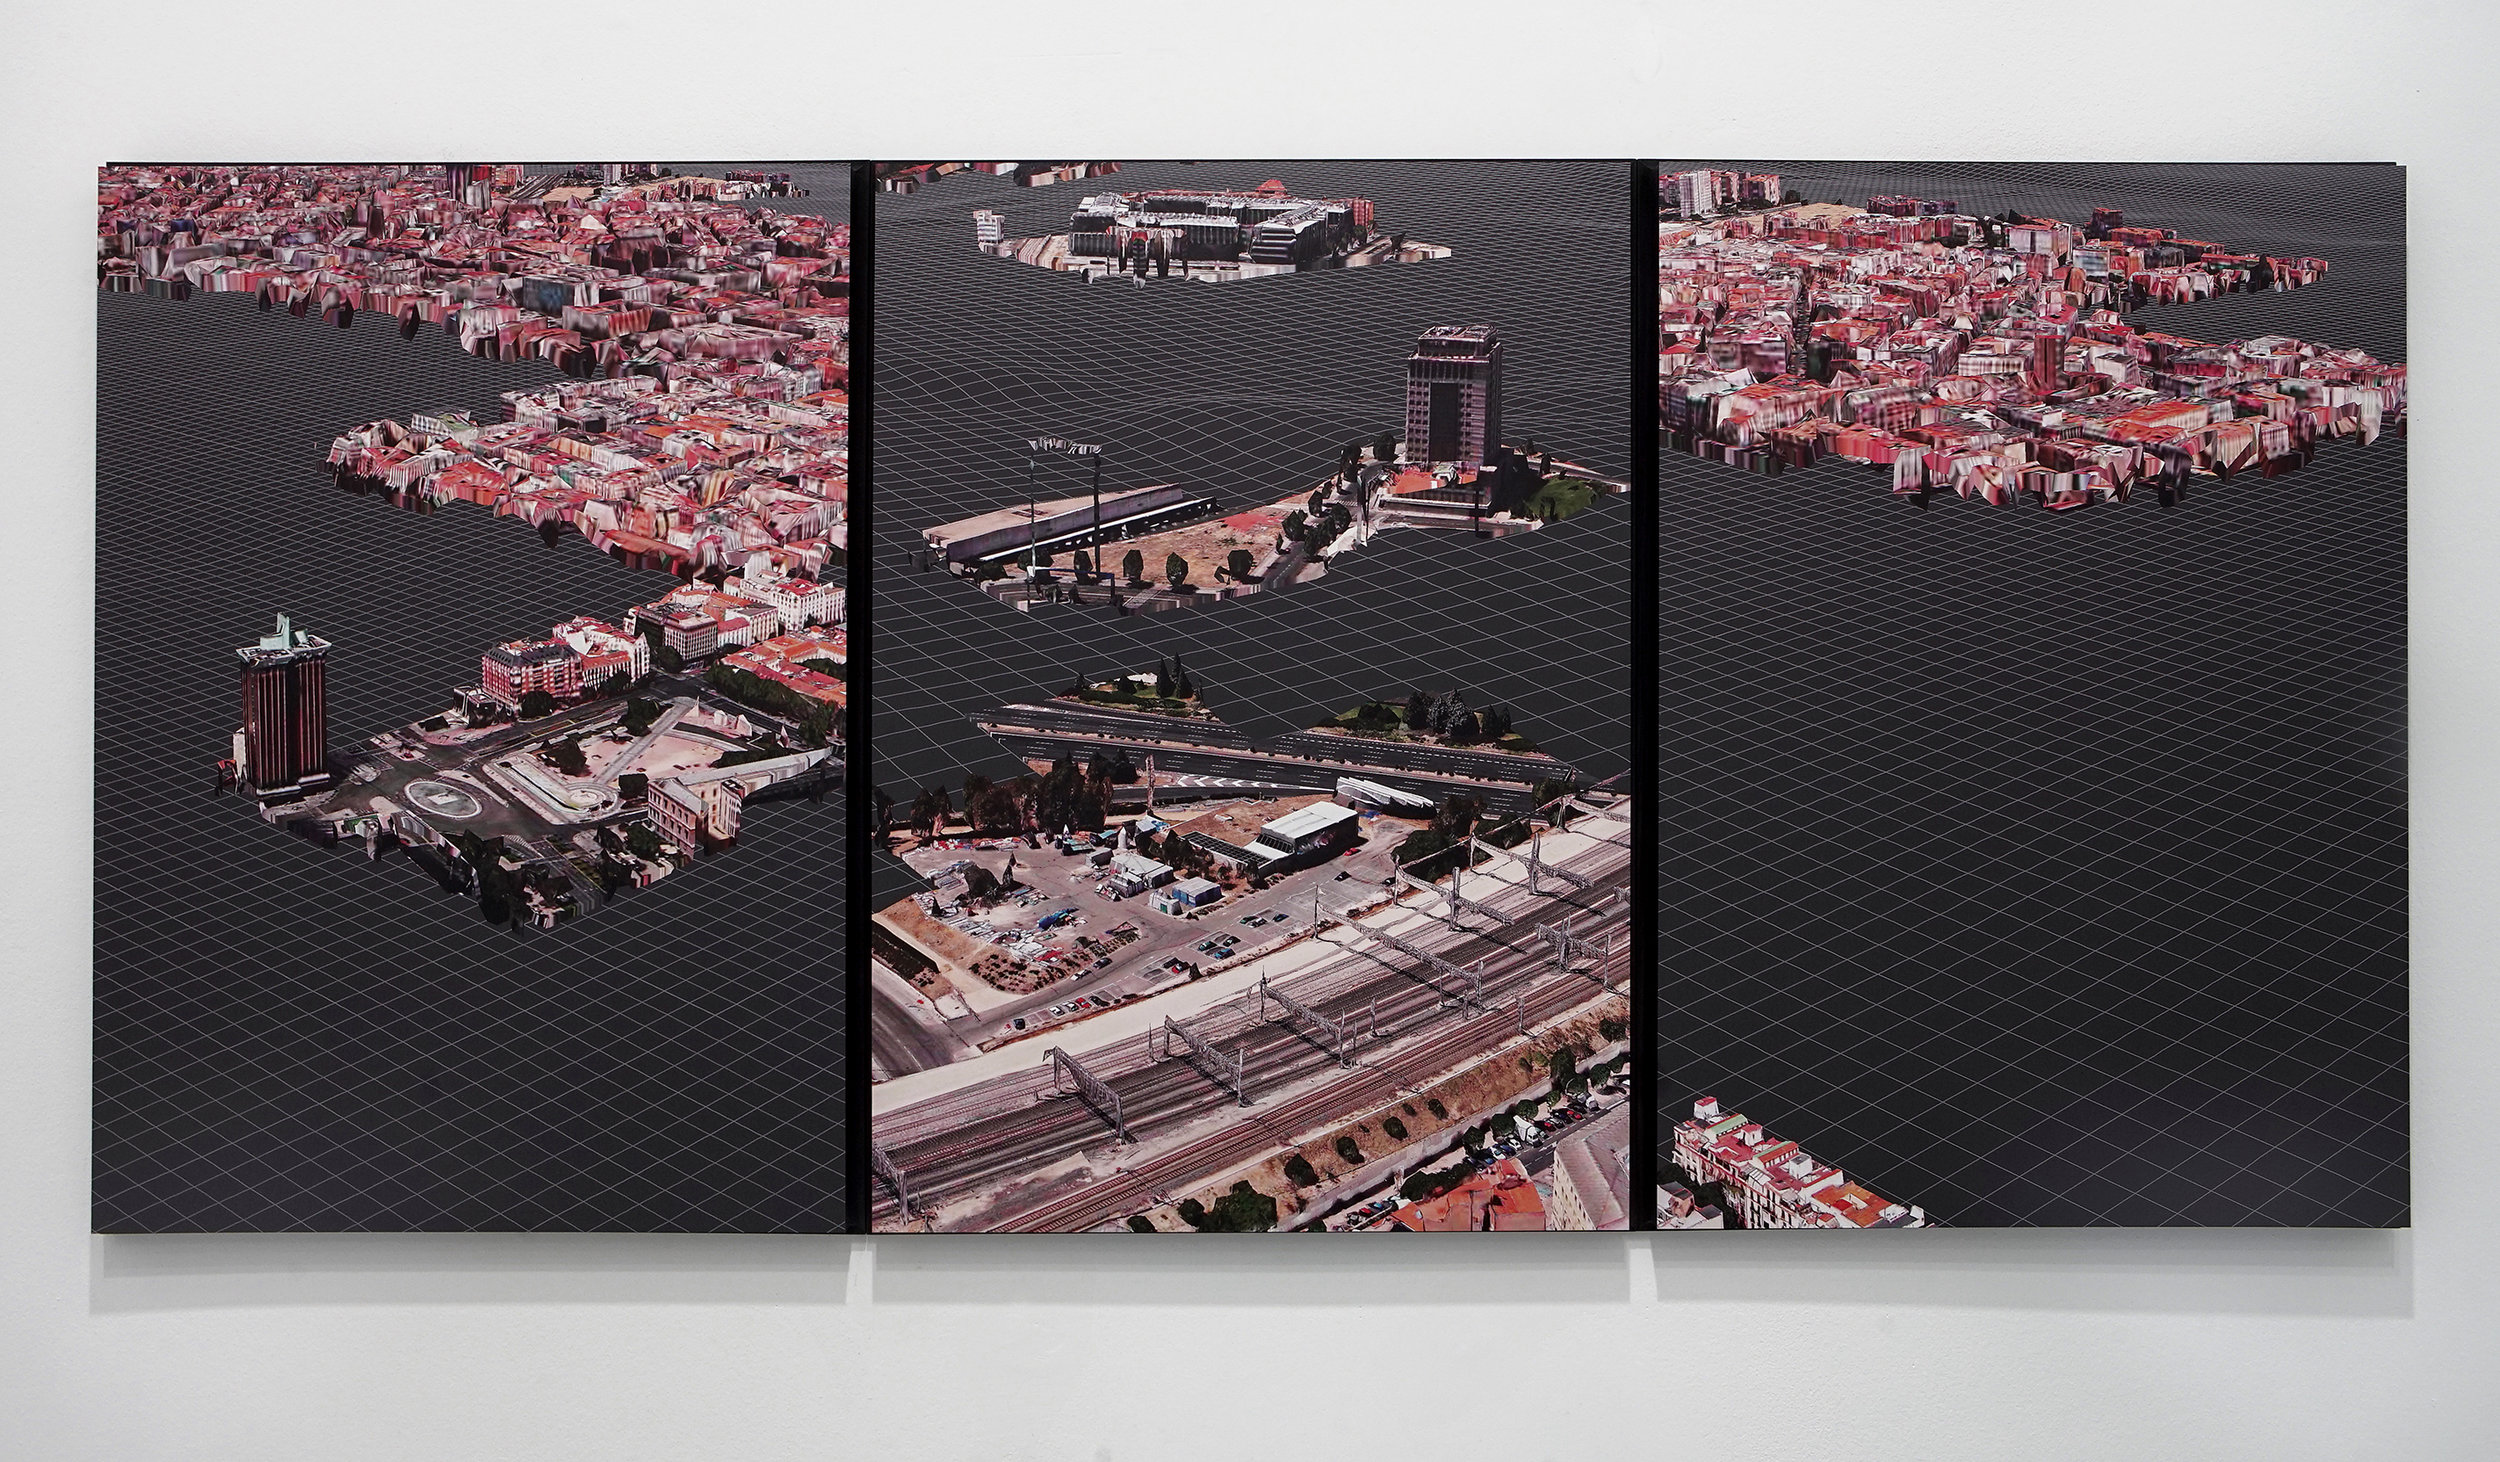 Triggered Glitches_MAD Norte:Sur (triptych), 2017  1800 X 840mm _ Digital image printed on Dibond